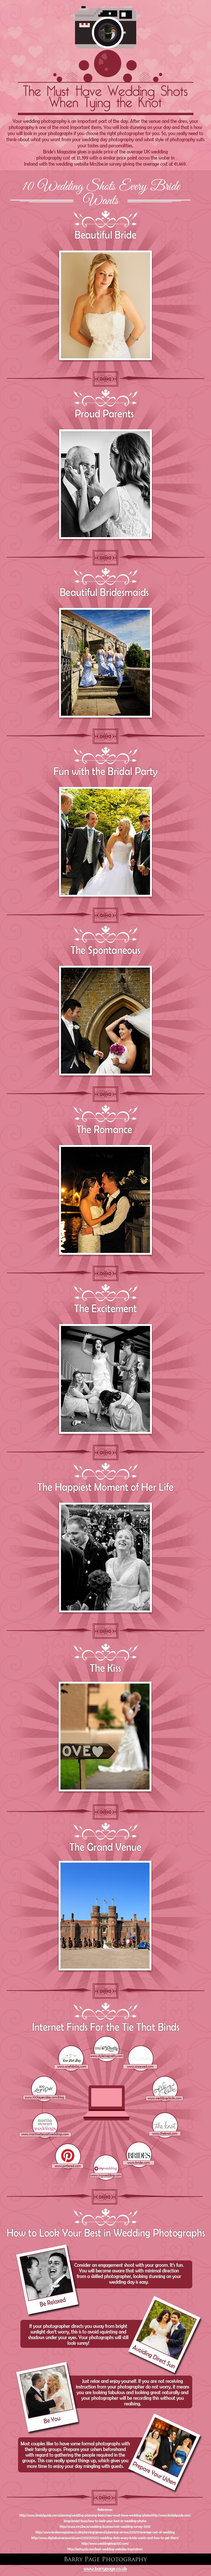 The Must Have Wedding Shots